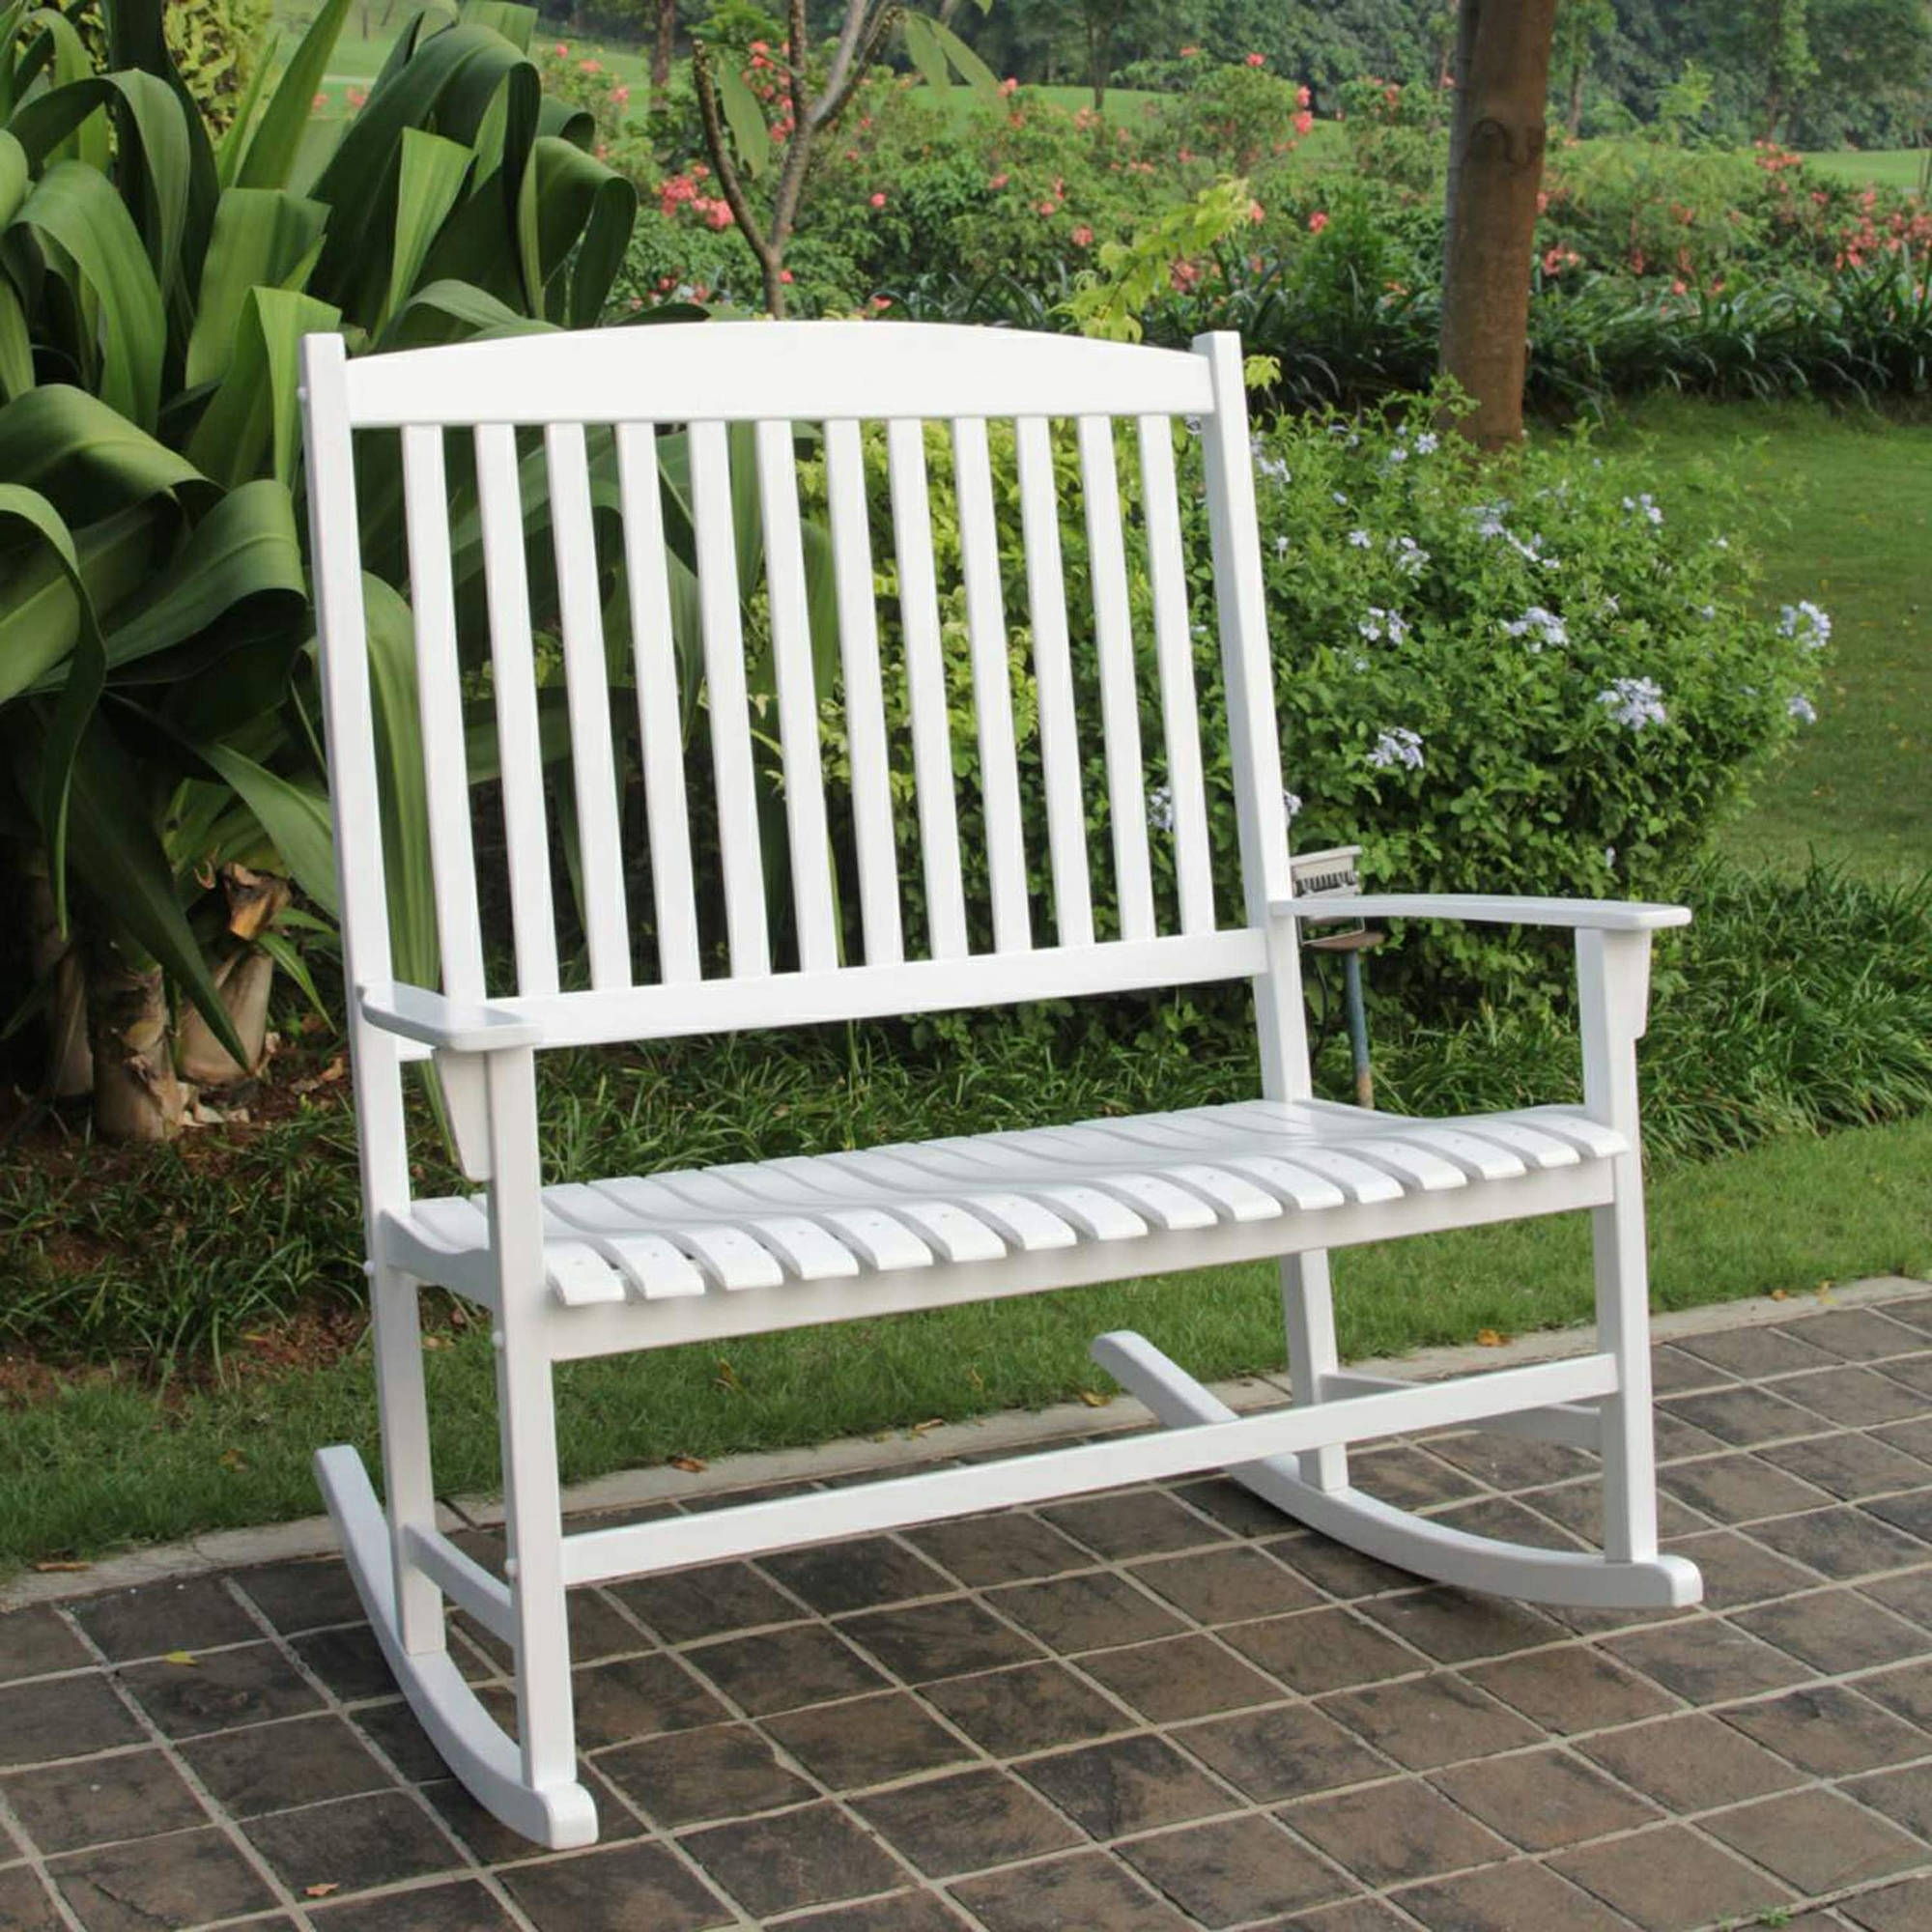 Widely Used White Patio Rocking Chairs Throughout Patio Loveseat White Hardwood Outdoor Rocking Chair For  (View 15 of 15)